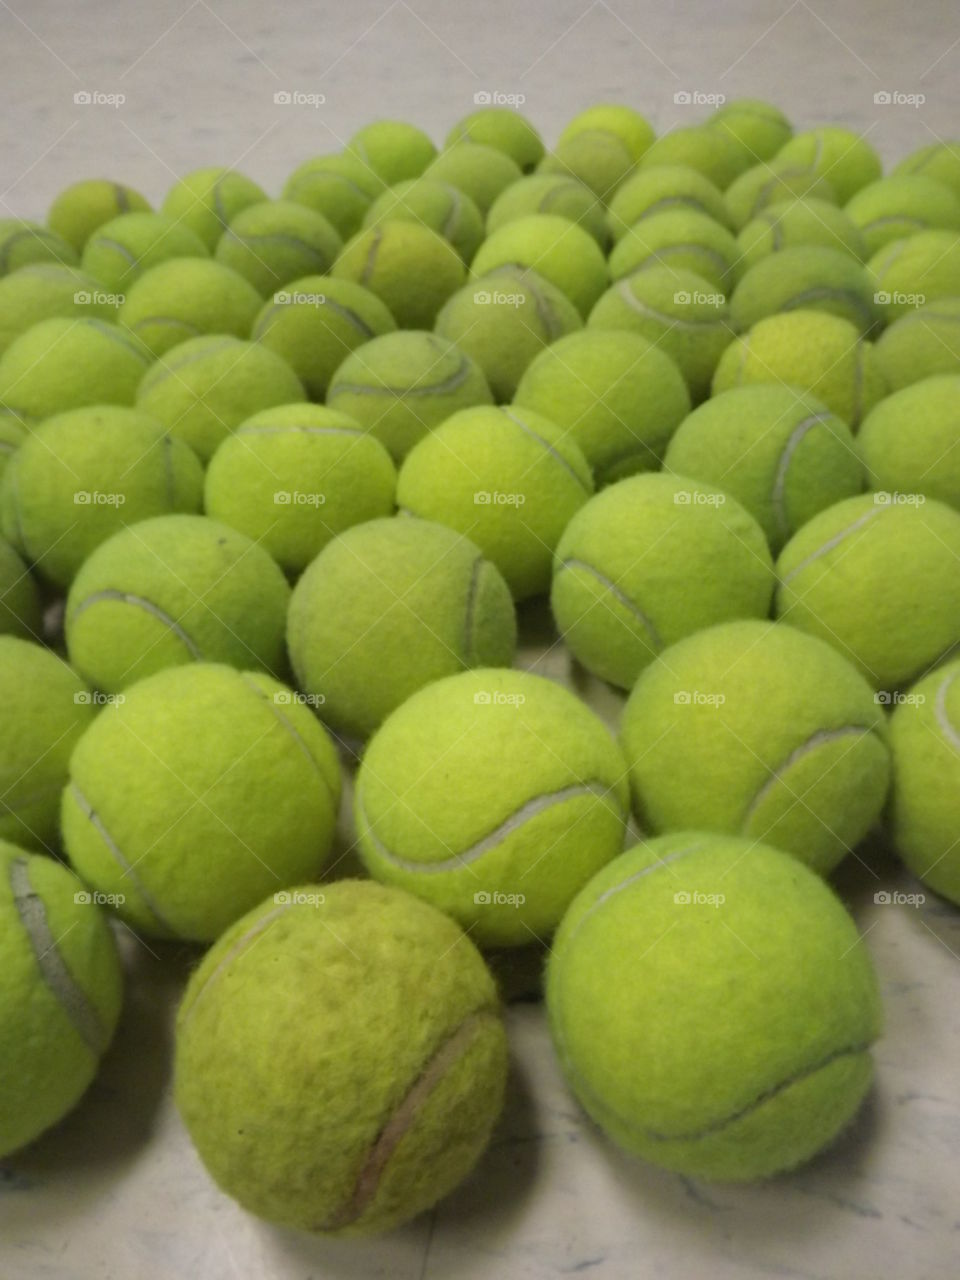 get your tennis ball